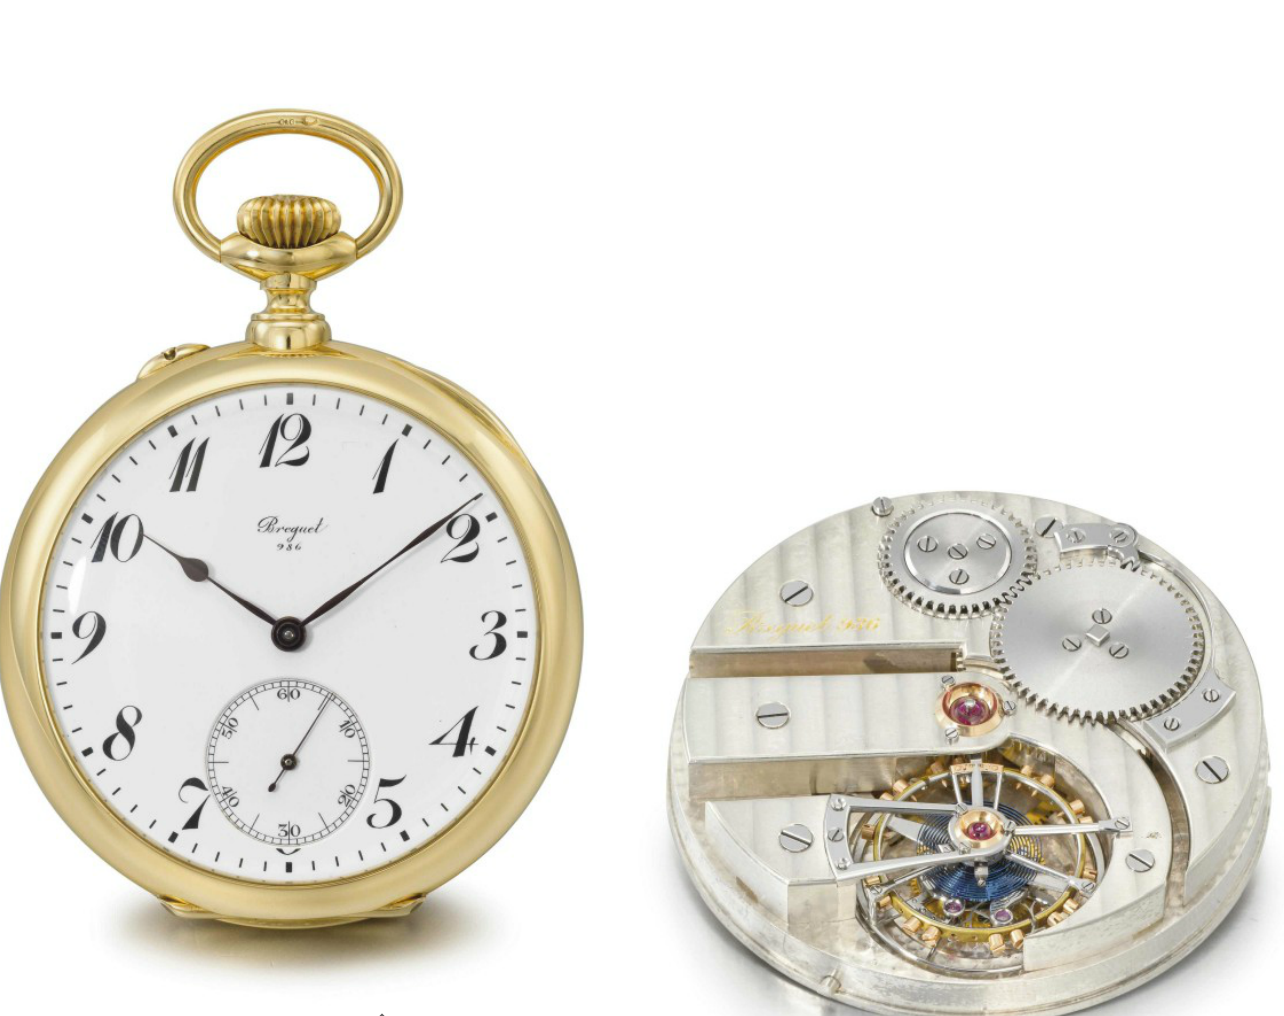 Historical Perspectives: (Possibly) The World's First Perpetual Calendar Wristwatch, From Breguet, Revisited On Leap Day 2016 Historical Perspectives: (Possibly) The World's First Perpetual Calendar Wristwatch, From Breguet, Revisited On Leap Day 2016 Screen Shot 2016 02 29 at 1